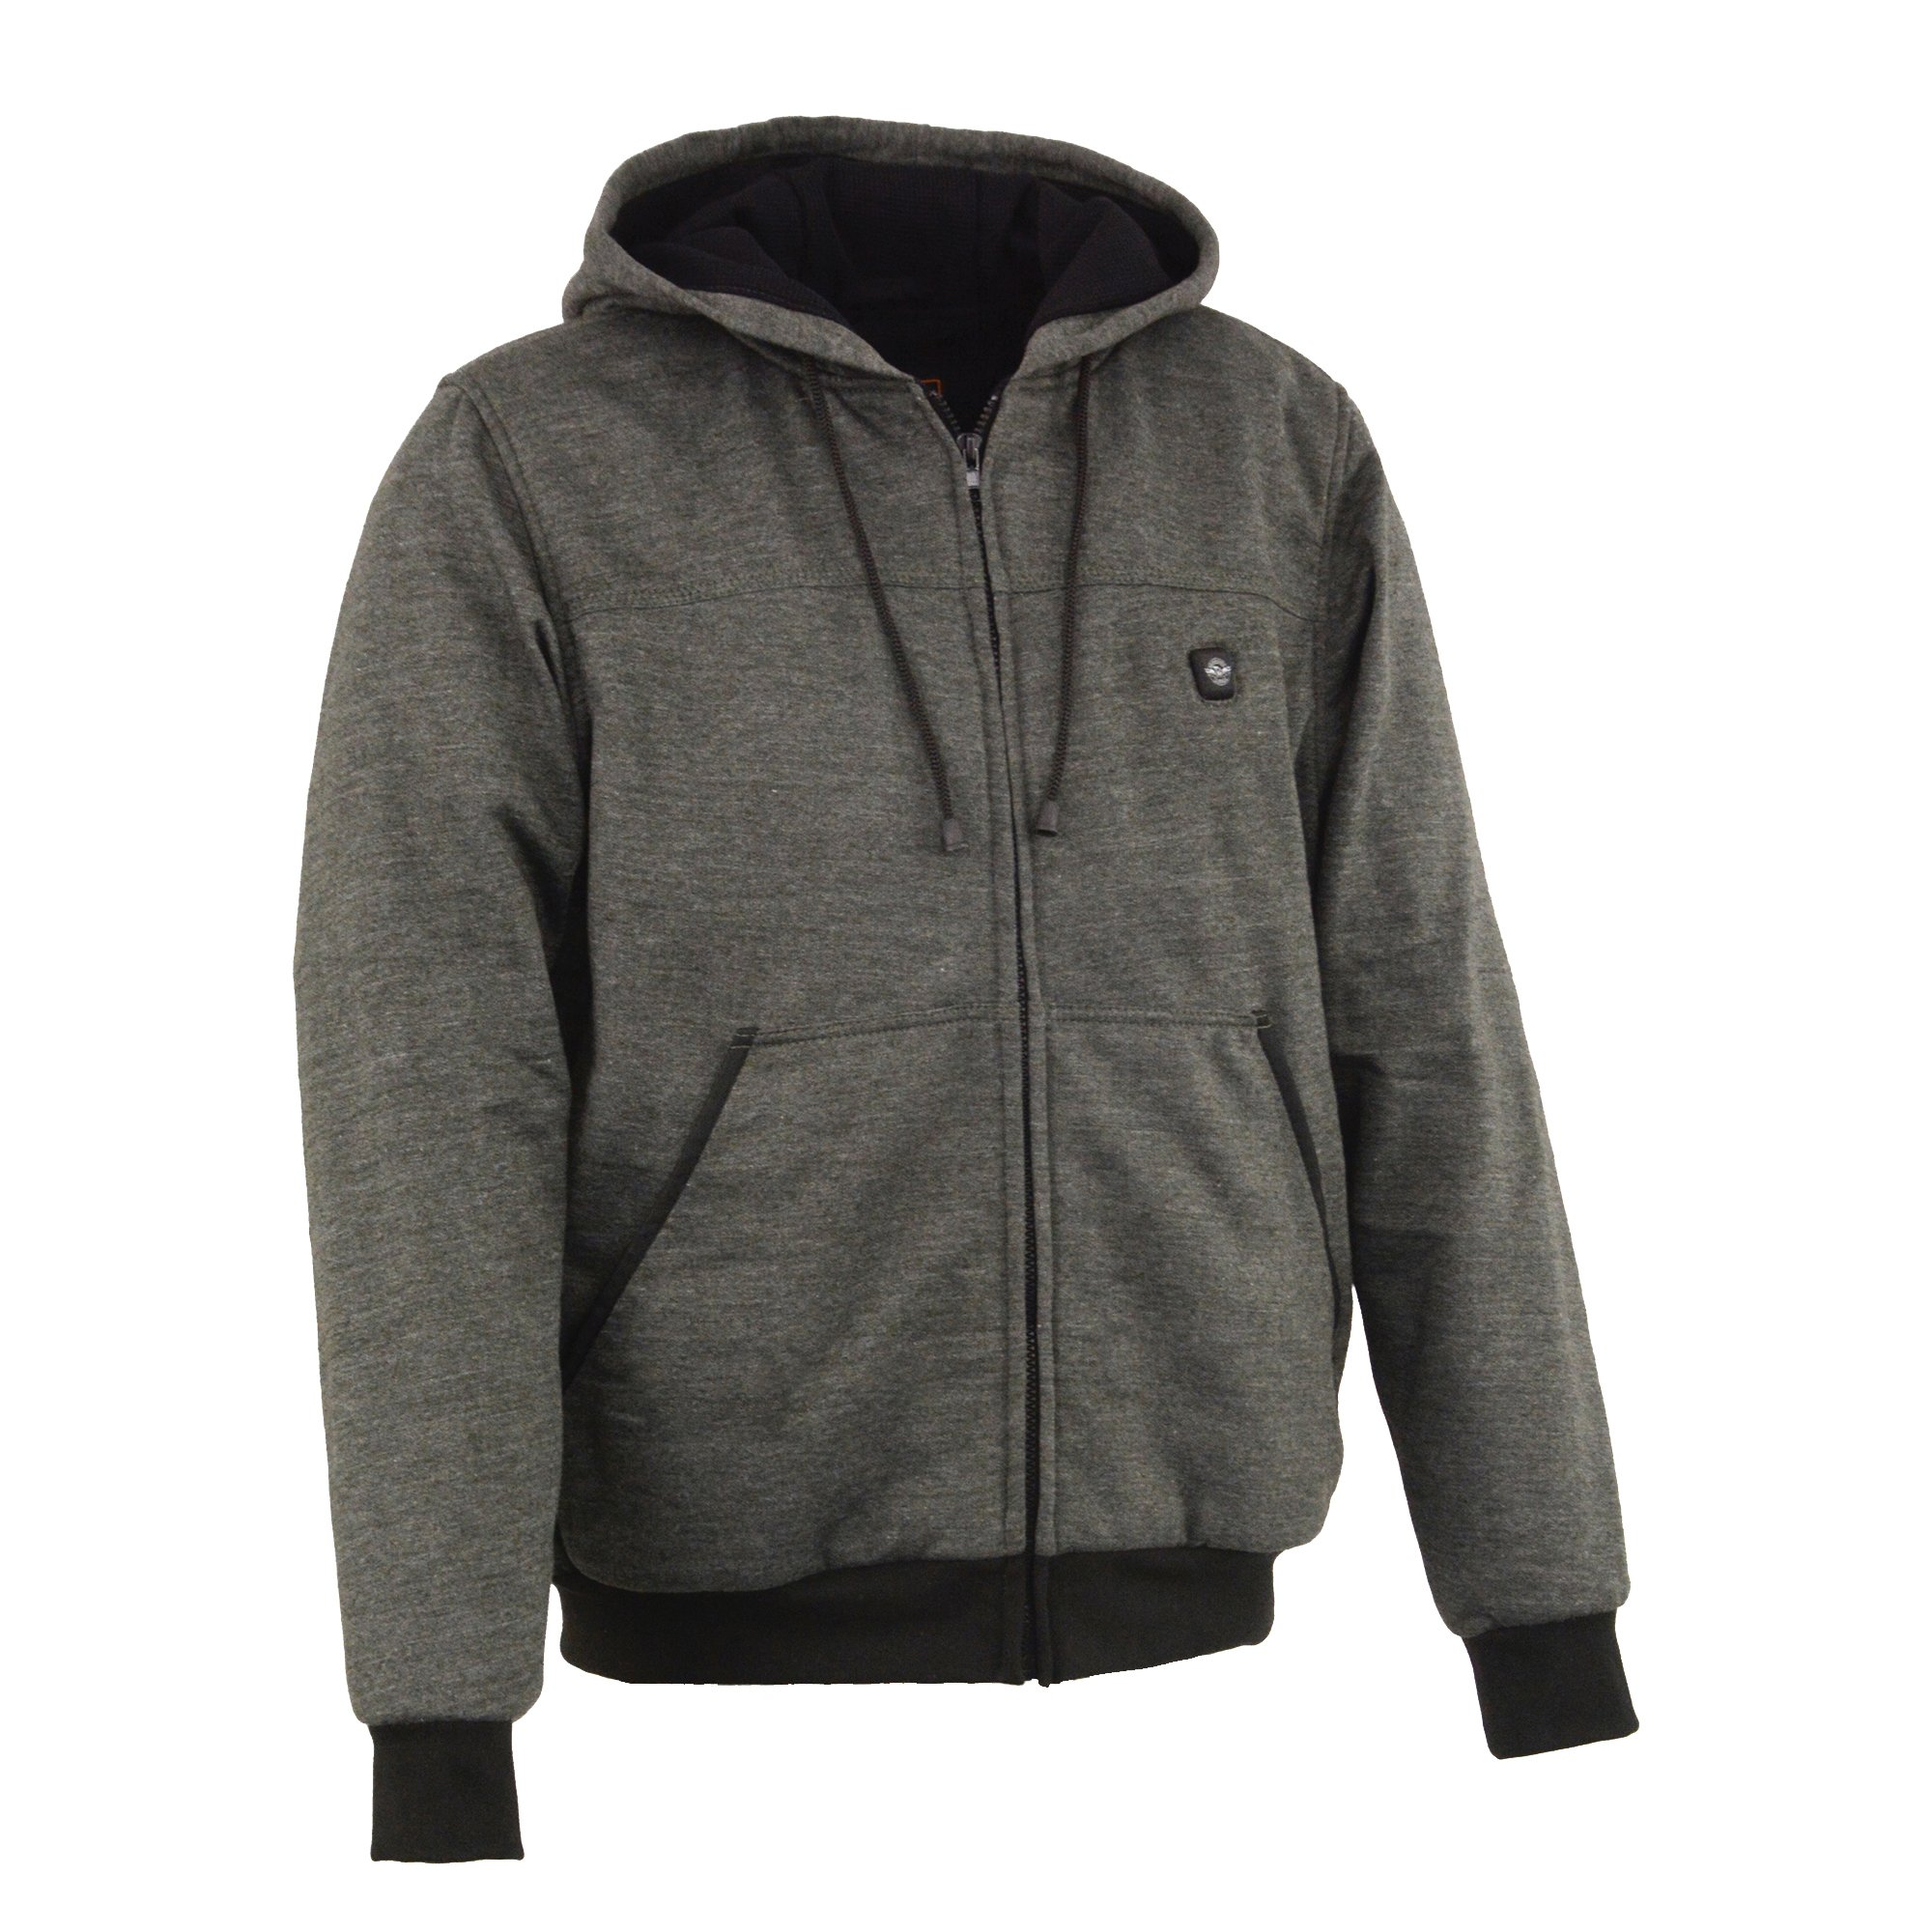 Milwaukee Performance Men's Heated Hoodie with Front and Back Heating Elements (Grey, X-Large)